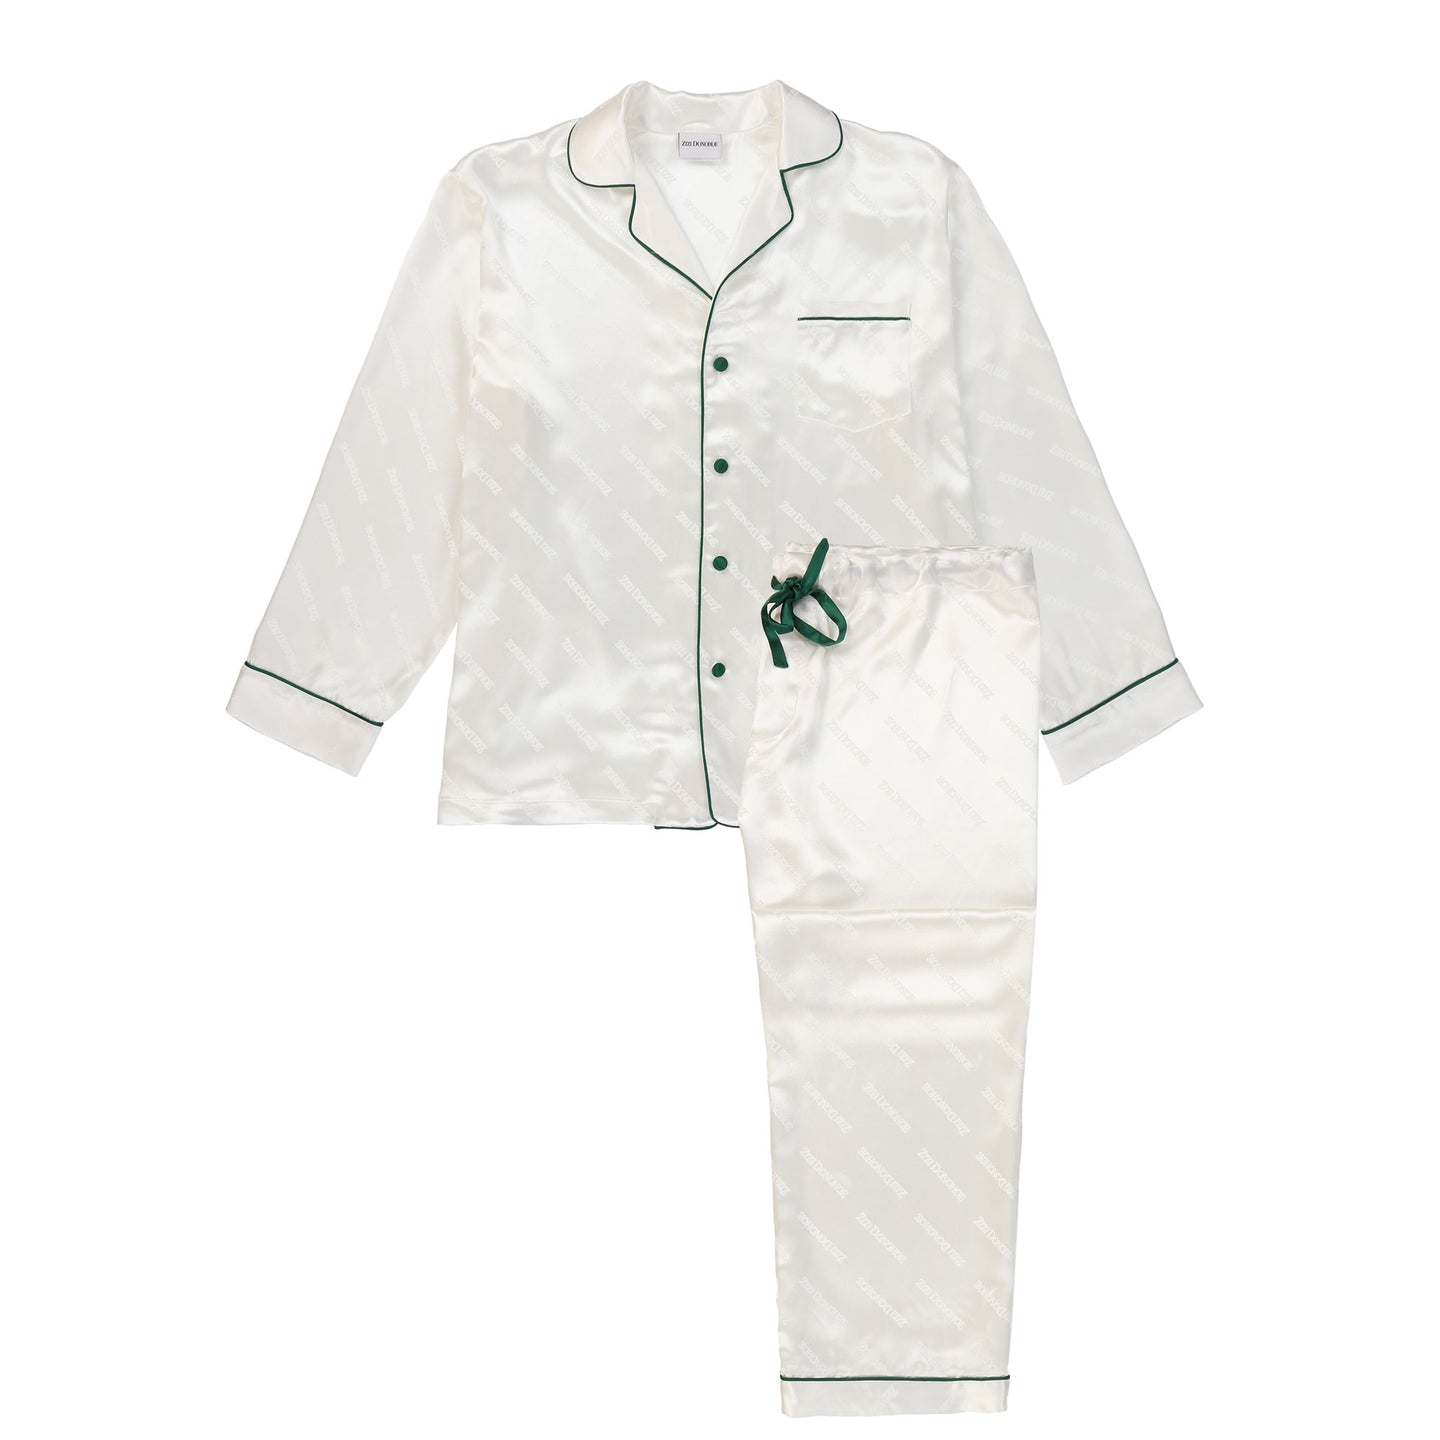 Men's Pearl Silk Jacquard Pajamas